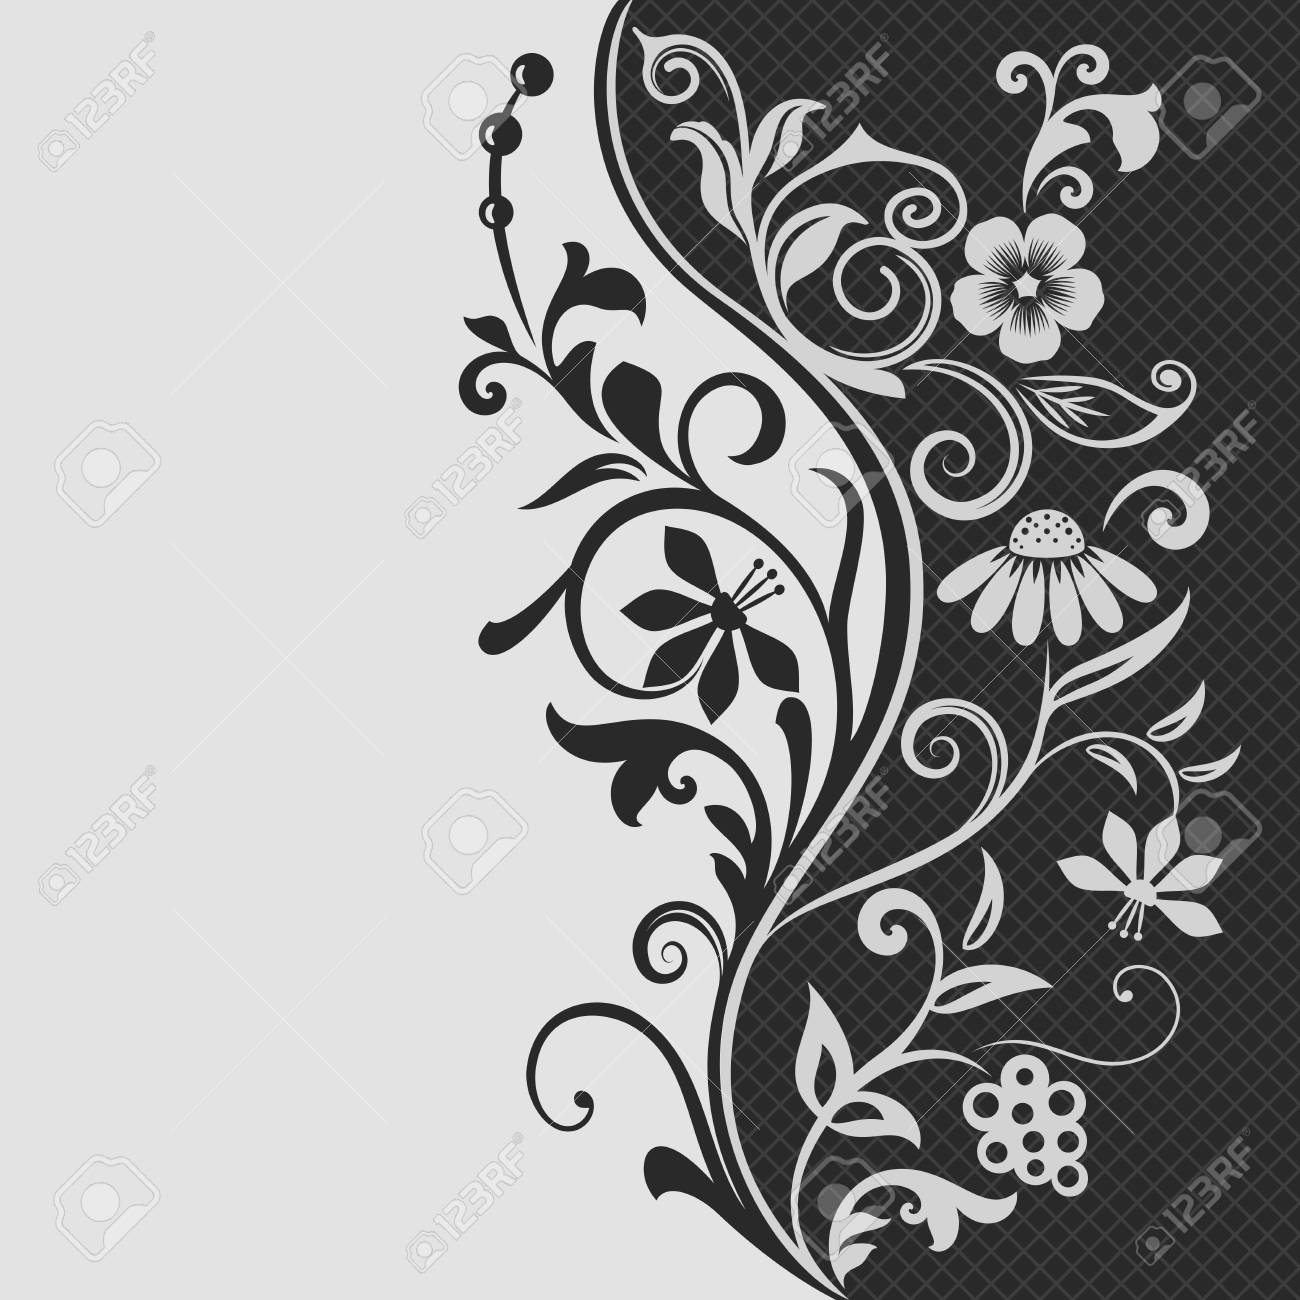 2f2ea6baab9 Black and white floral card vector template. Flourish design background.  Vector illustration. Stock